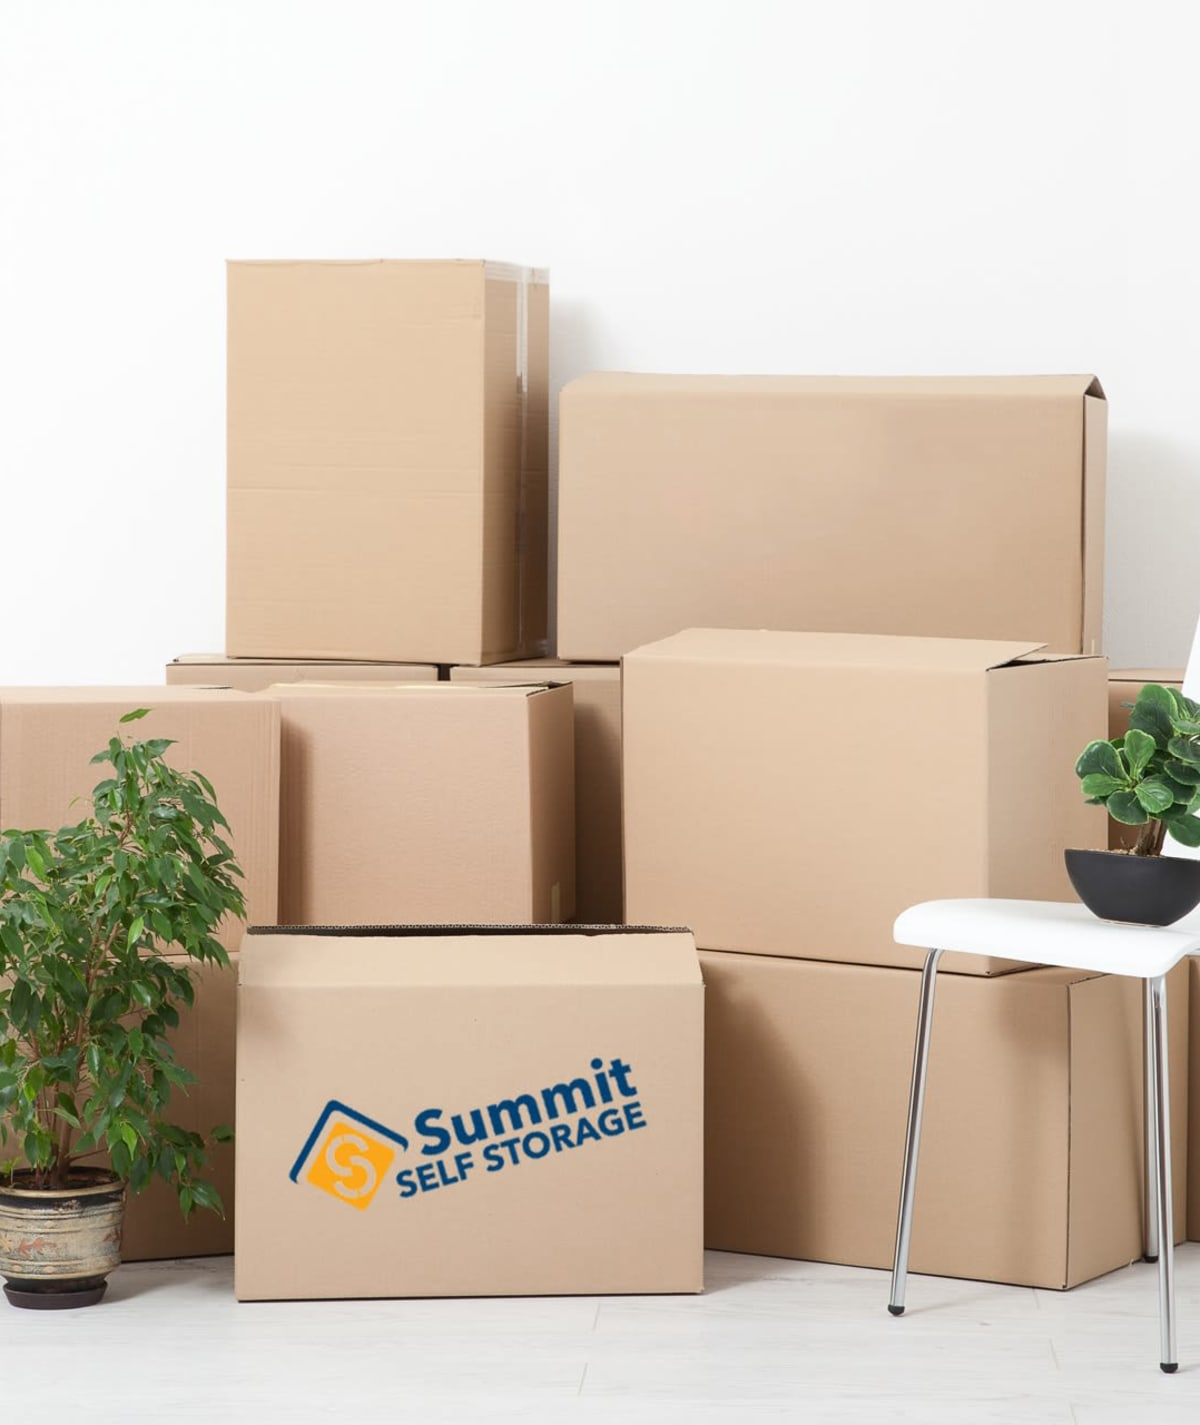 Blog for Summit Self Storage